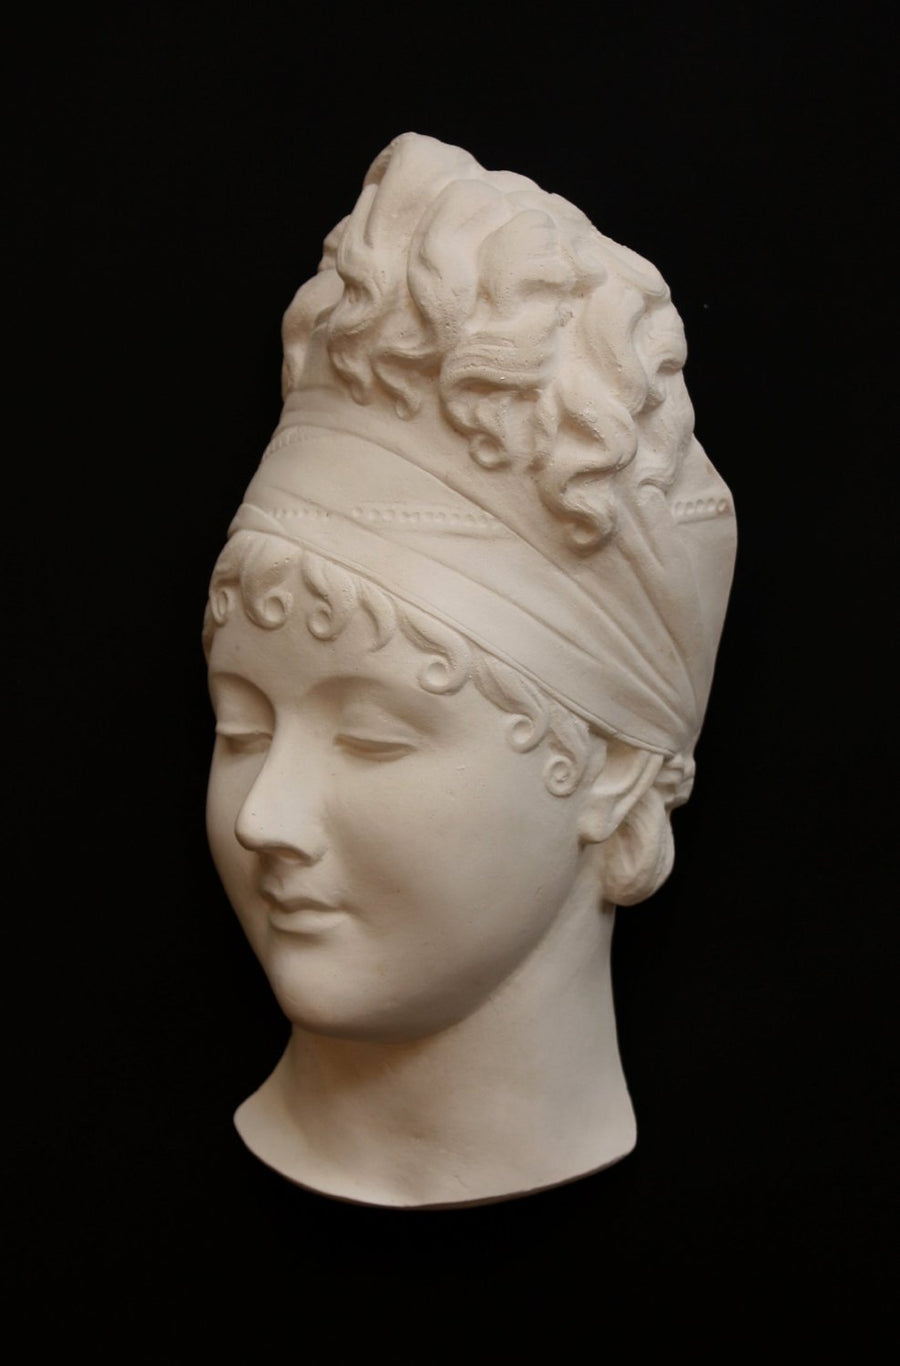 photo with black background of plaster cast sculpture of face of Madame Recamier with high up-do and ribbon over forehead